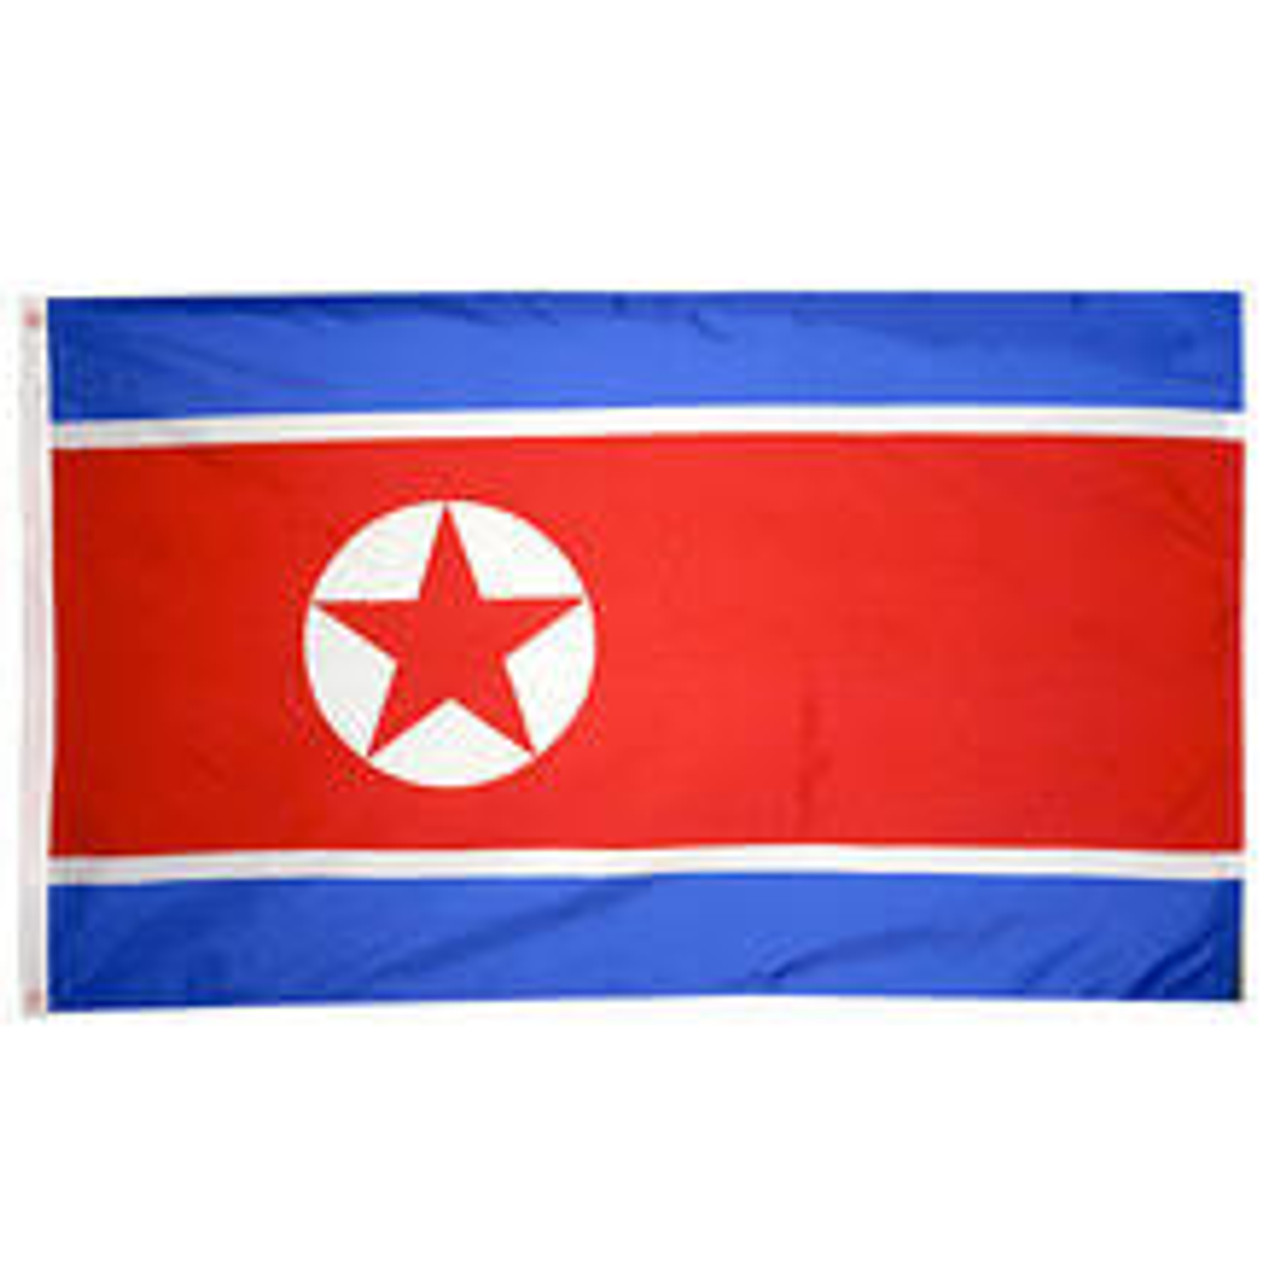 A North Korean flag made of nylon with lock stitching, polyester canvas heading, and brass grommets. Design is a central red panel, bordered above and below with narrow white stripes and broad blue stripes with an emblem of a red star surrounded by a white circle centered slightly left.